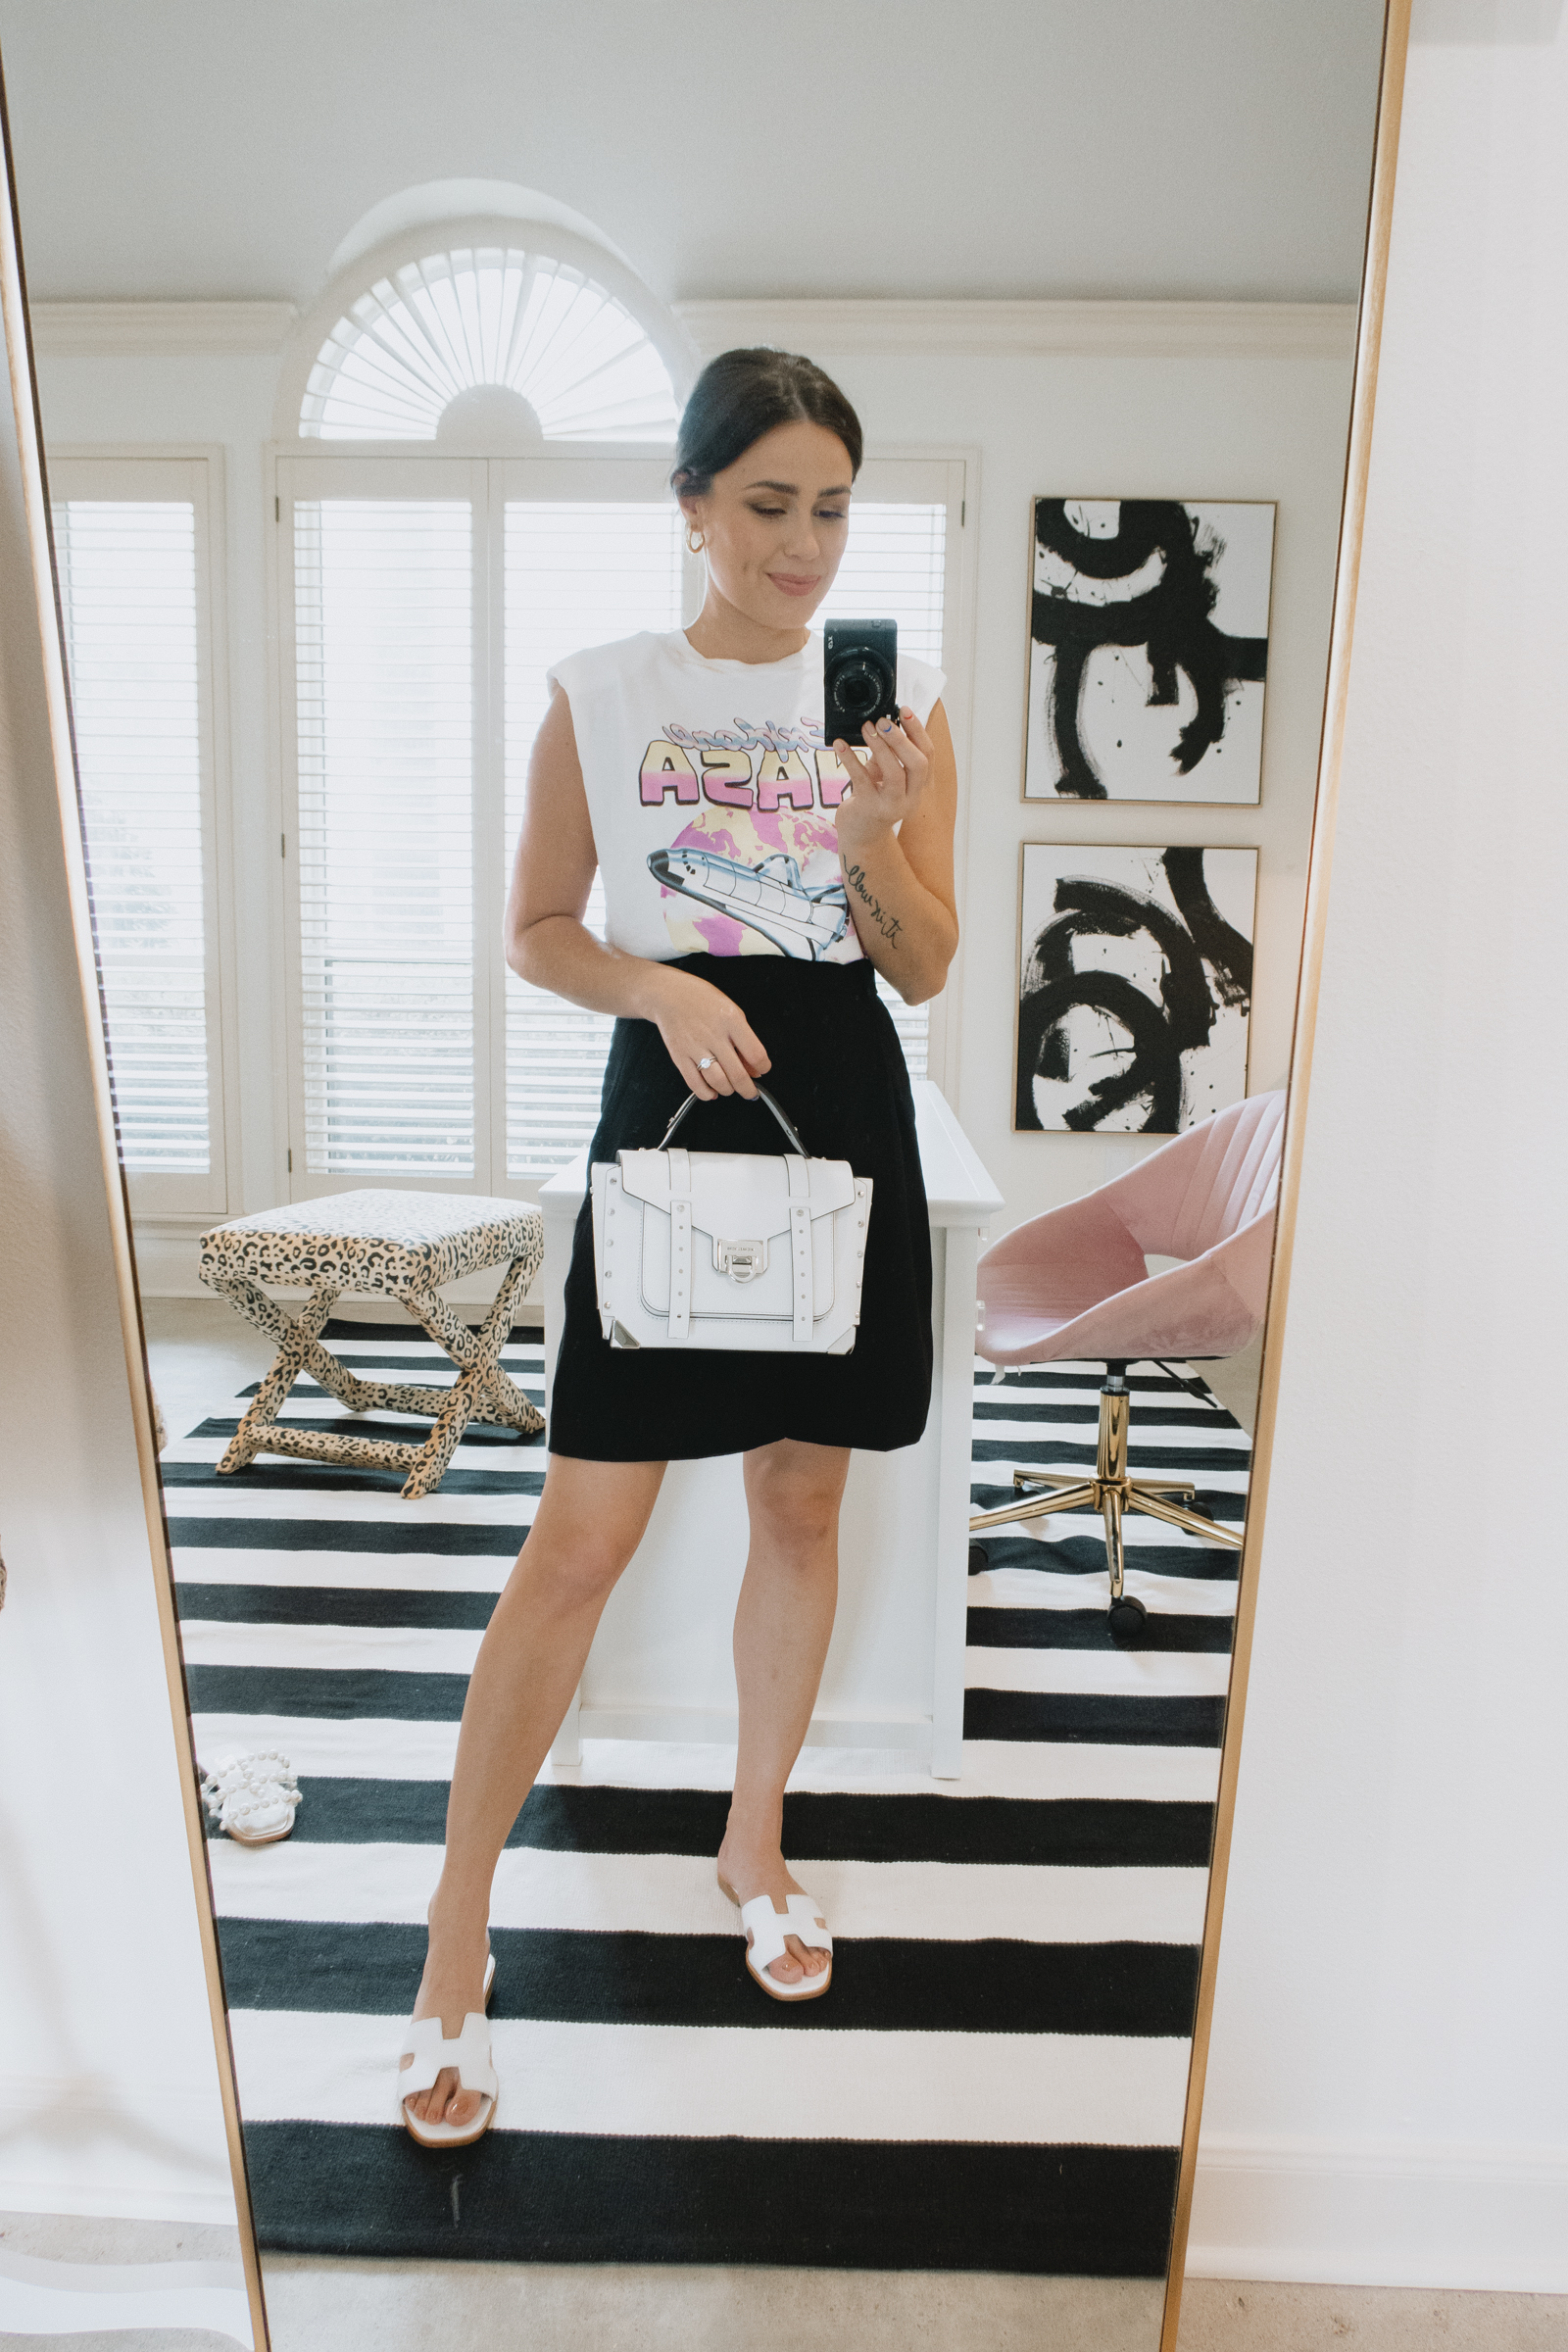 Elly Brown wears bermuda shorts with a graphic tee and Steve Madden white slide sandals